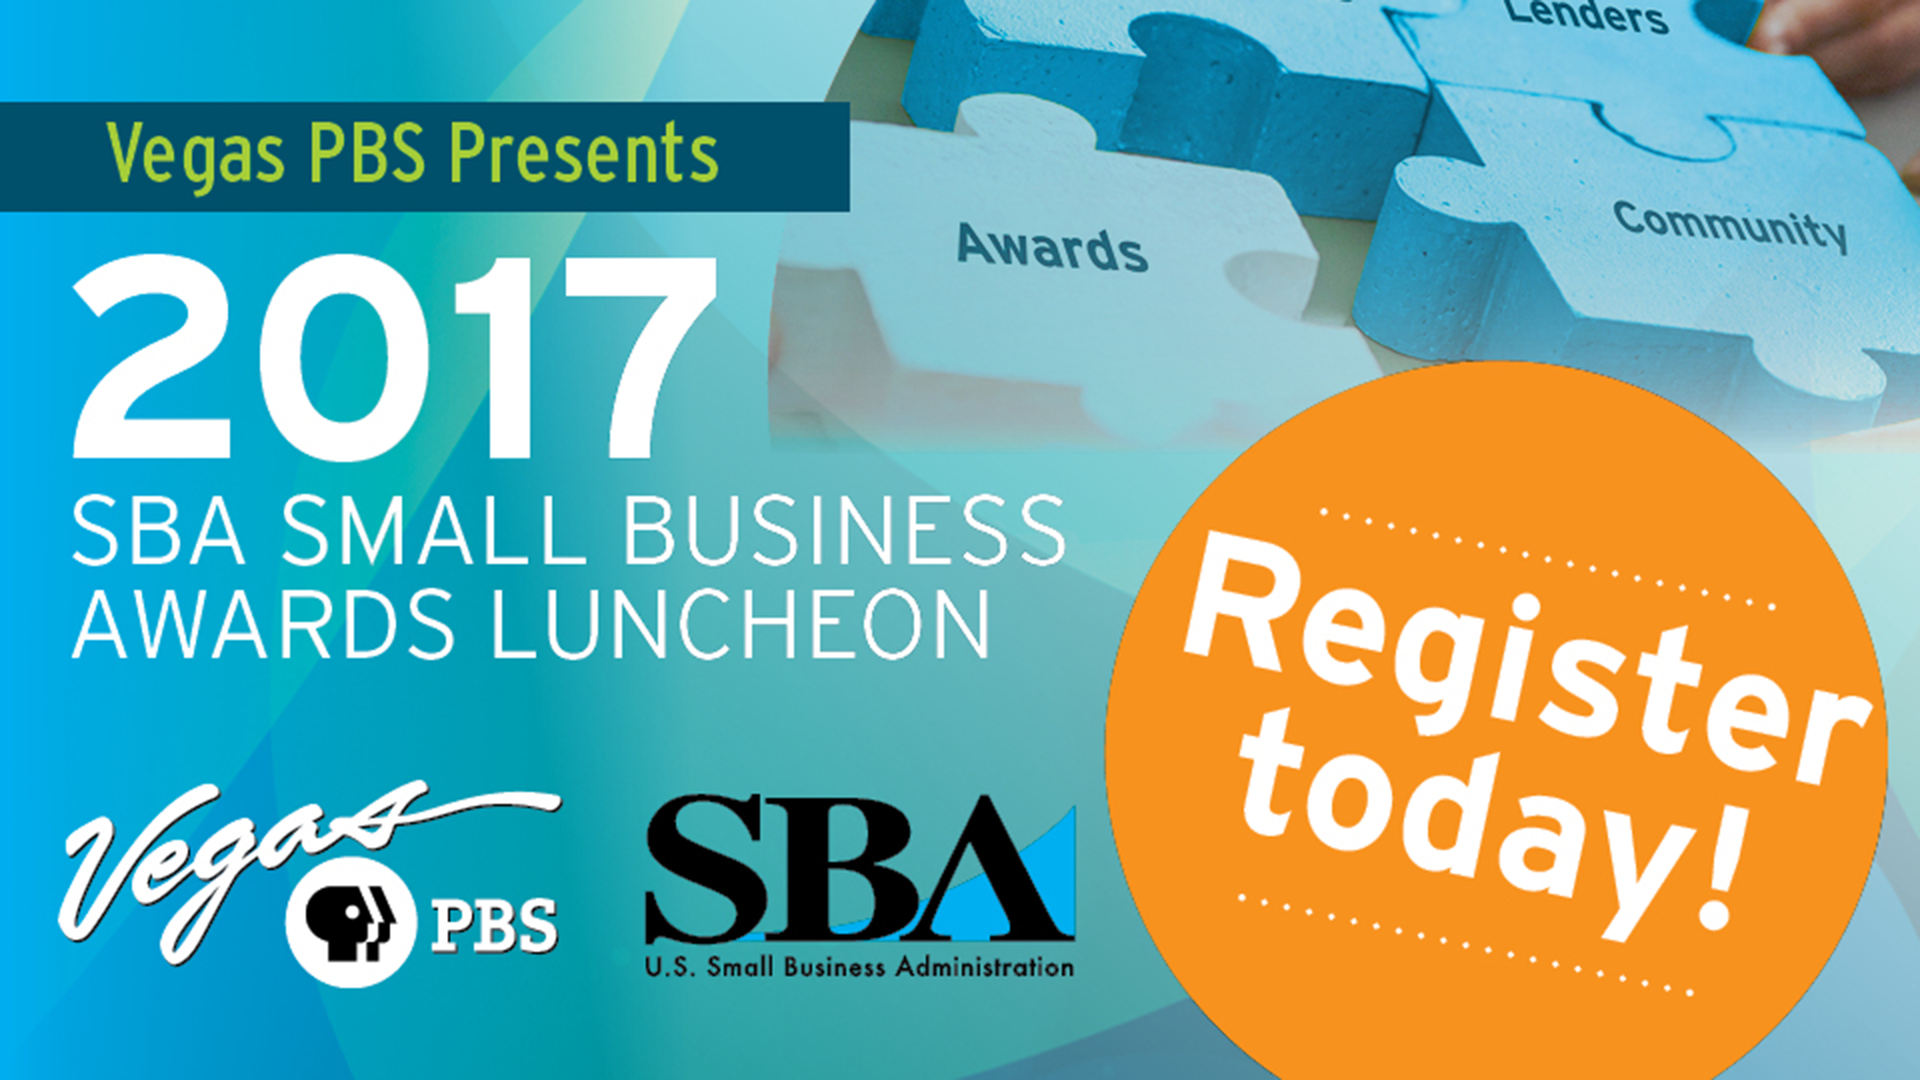 2017 SBA Small Business